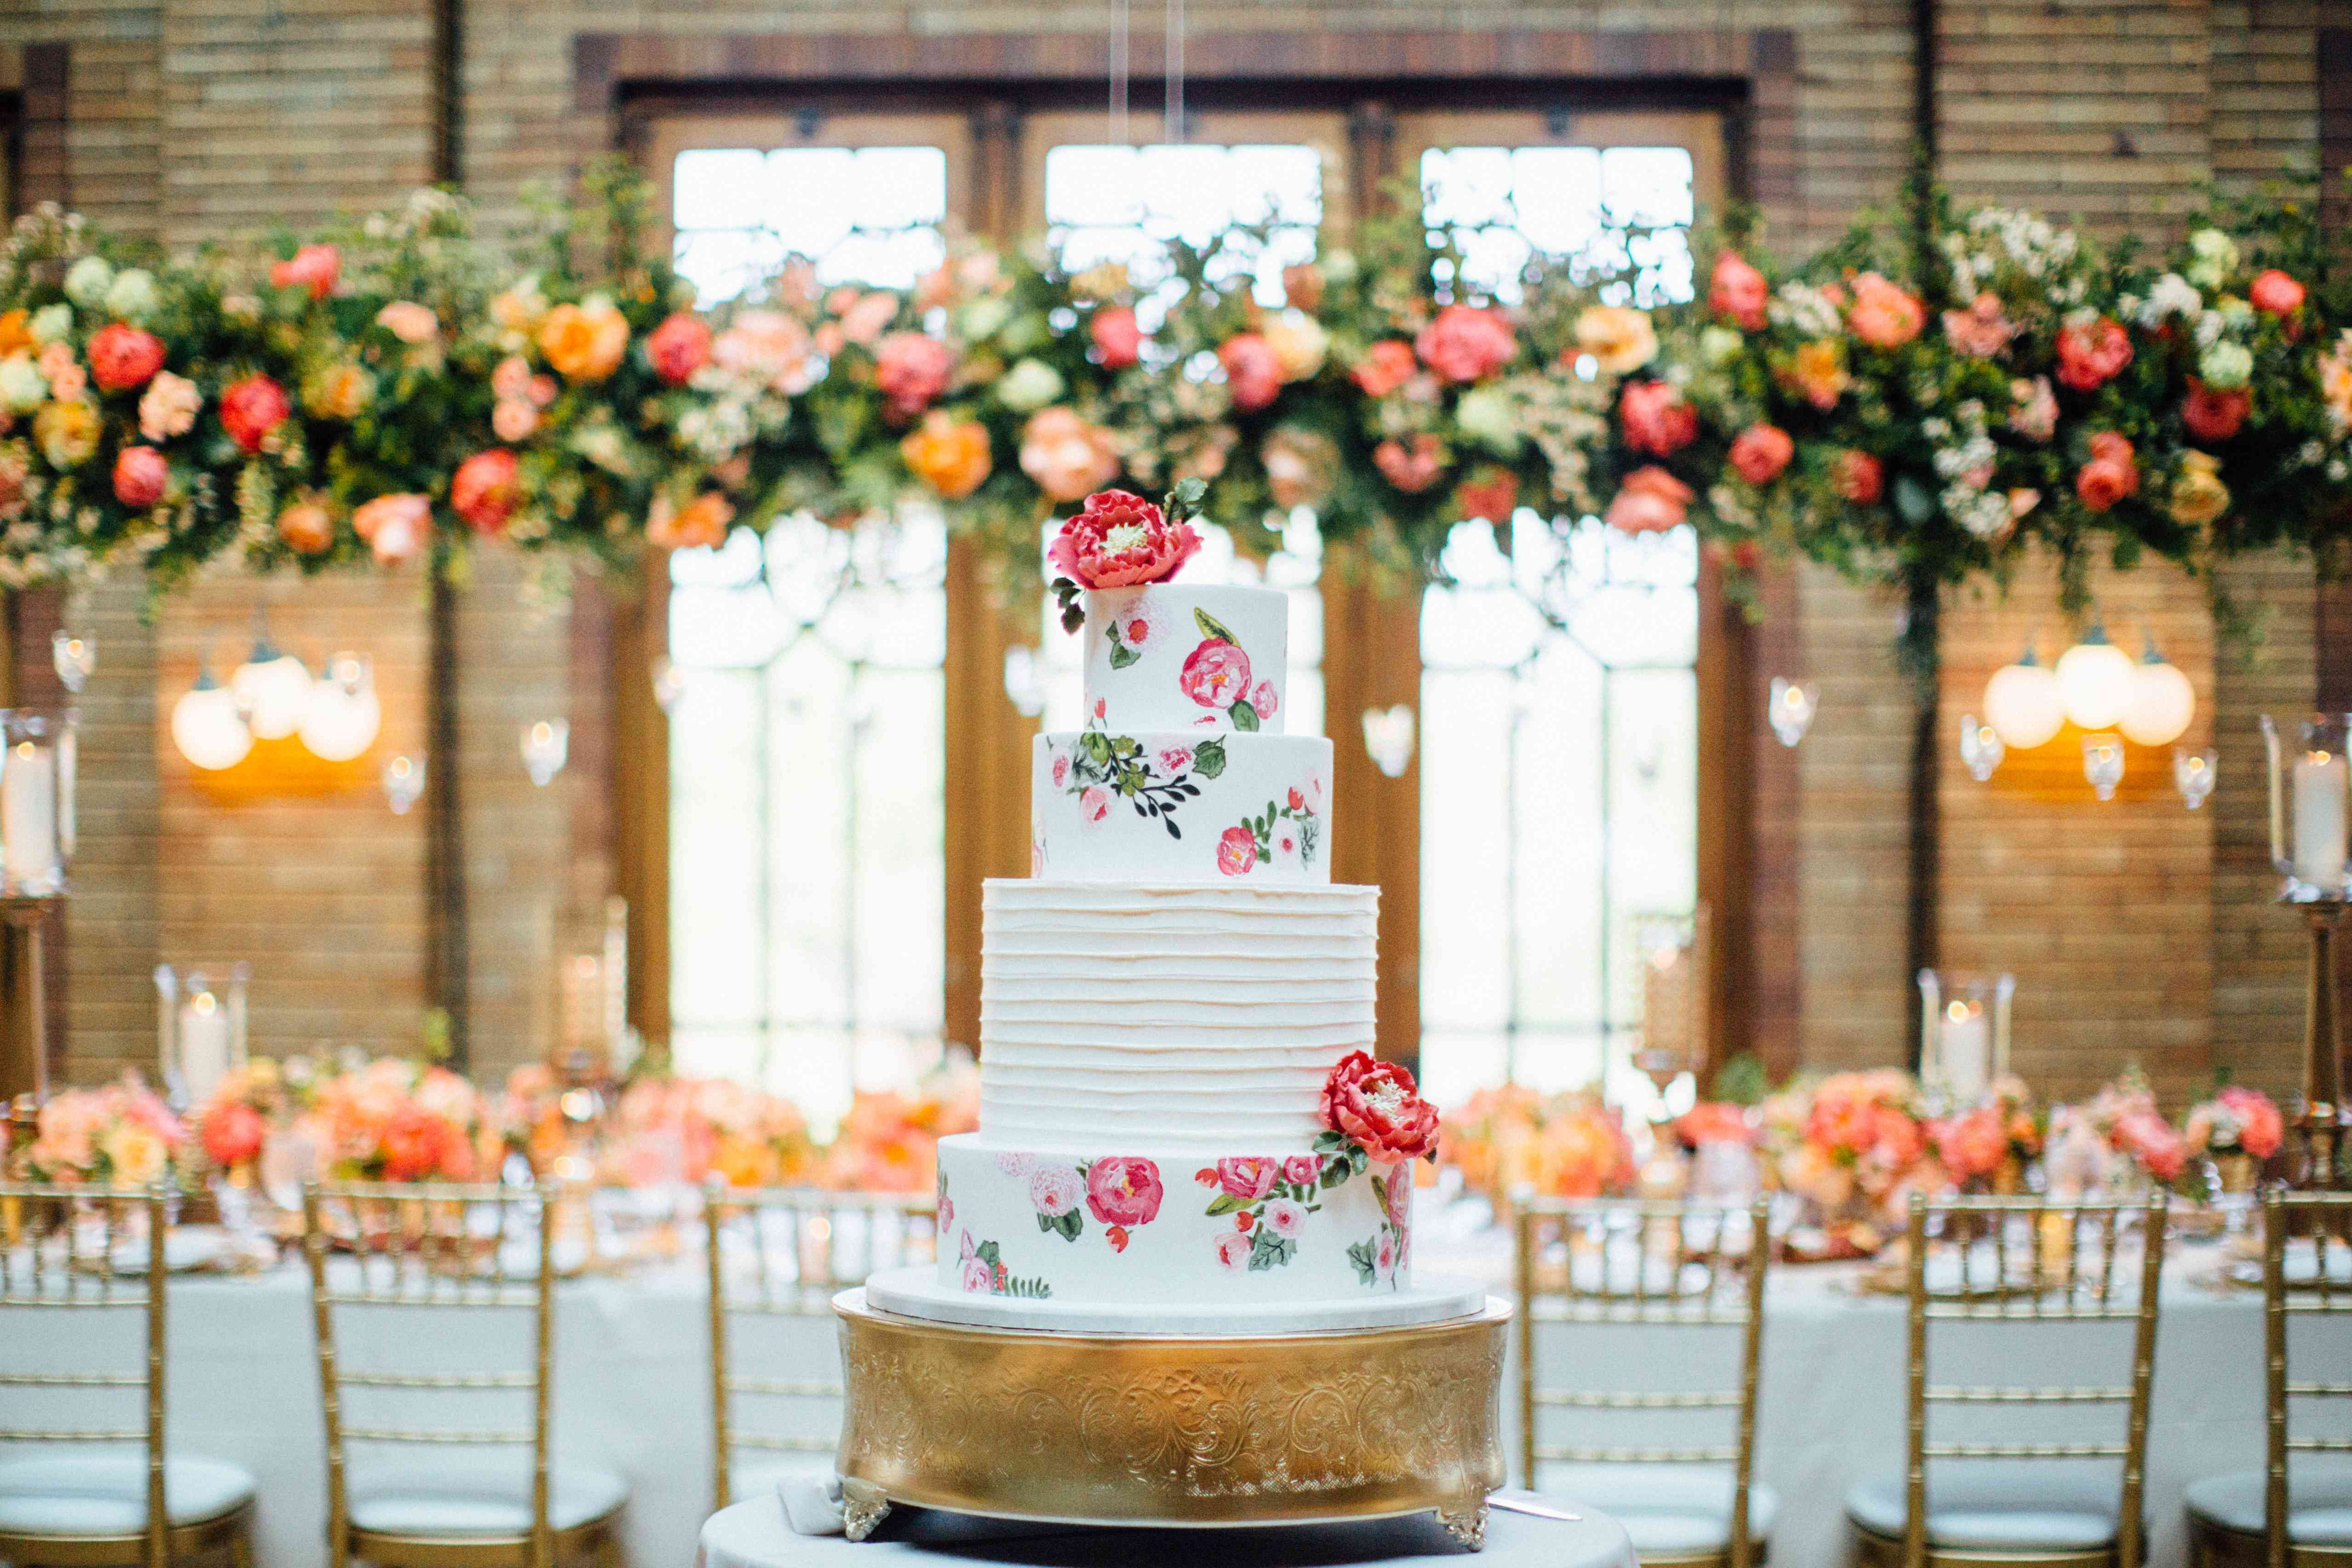 White Wedding Cake with Watercolor Pink Flowers